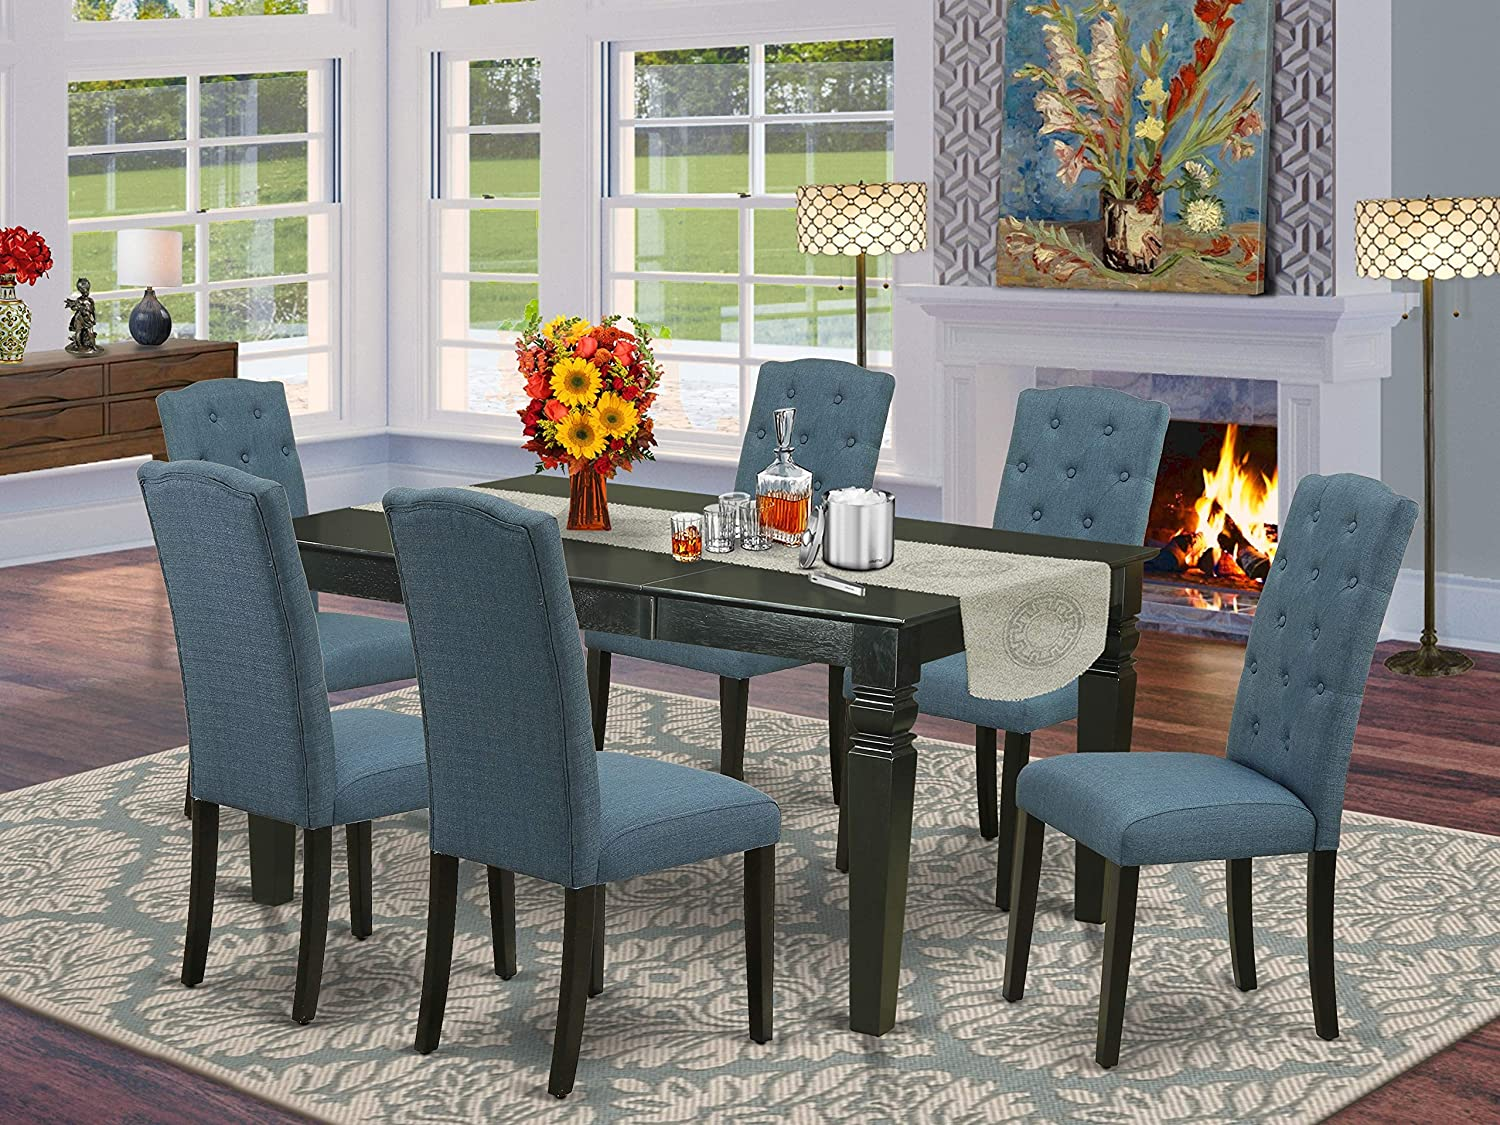 East West Furniture 7Pc Dinette Set Includes a Rectangular Kitchen Table with Butterfly Leaf and Six Parson Chairs with Blue Fabric, Black Finish